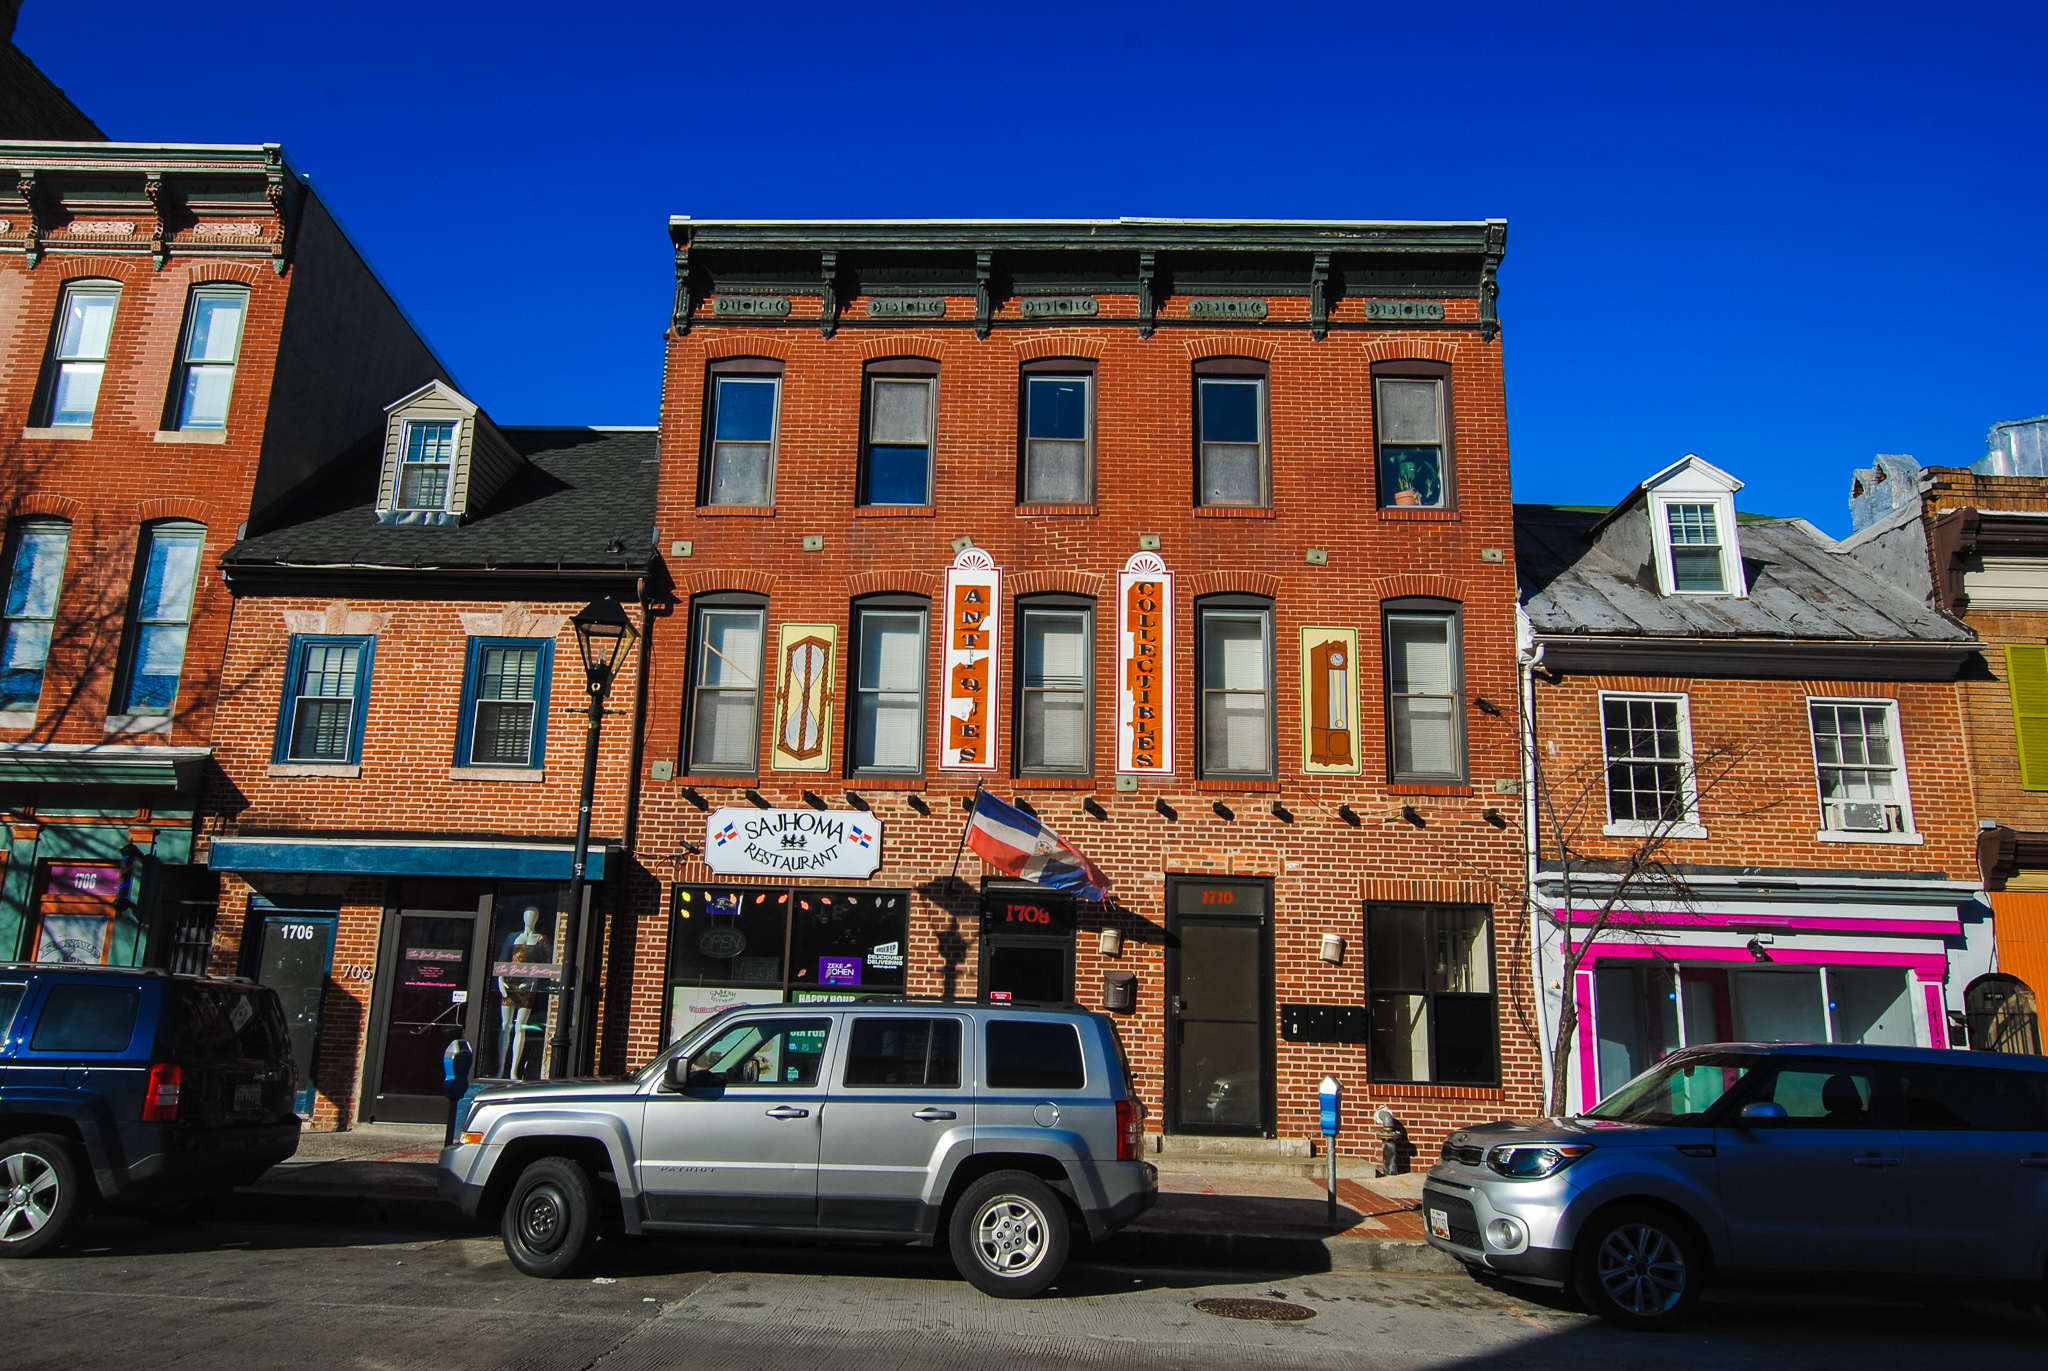 1708 – 1710 Fleet St: 3 Apartments, 1 Retail Space Fully Leased in Historic Fells Point